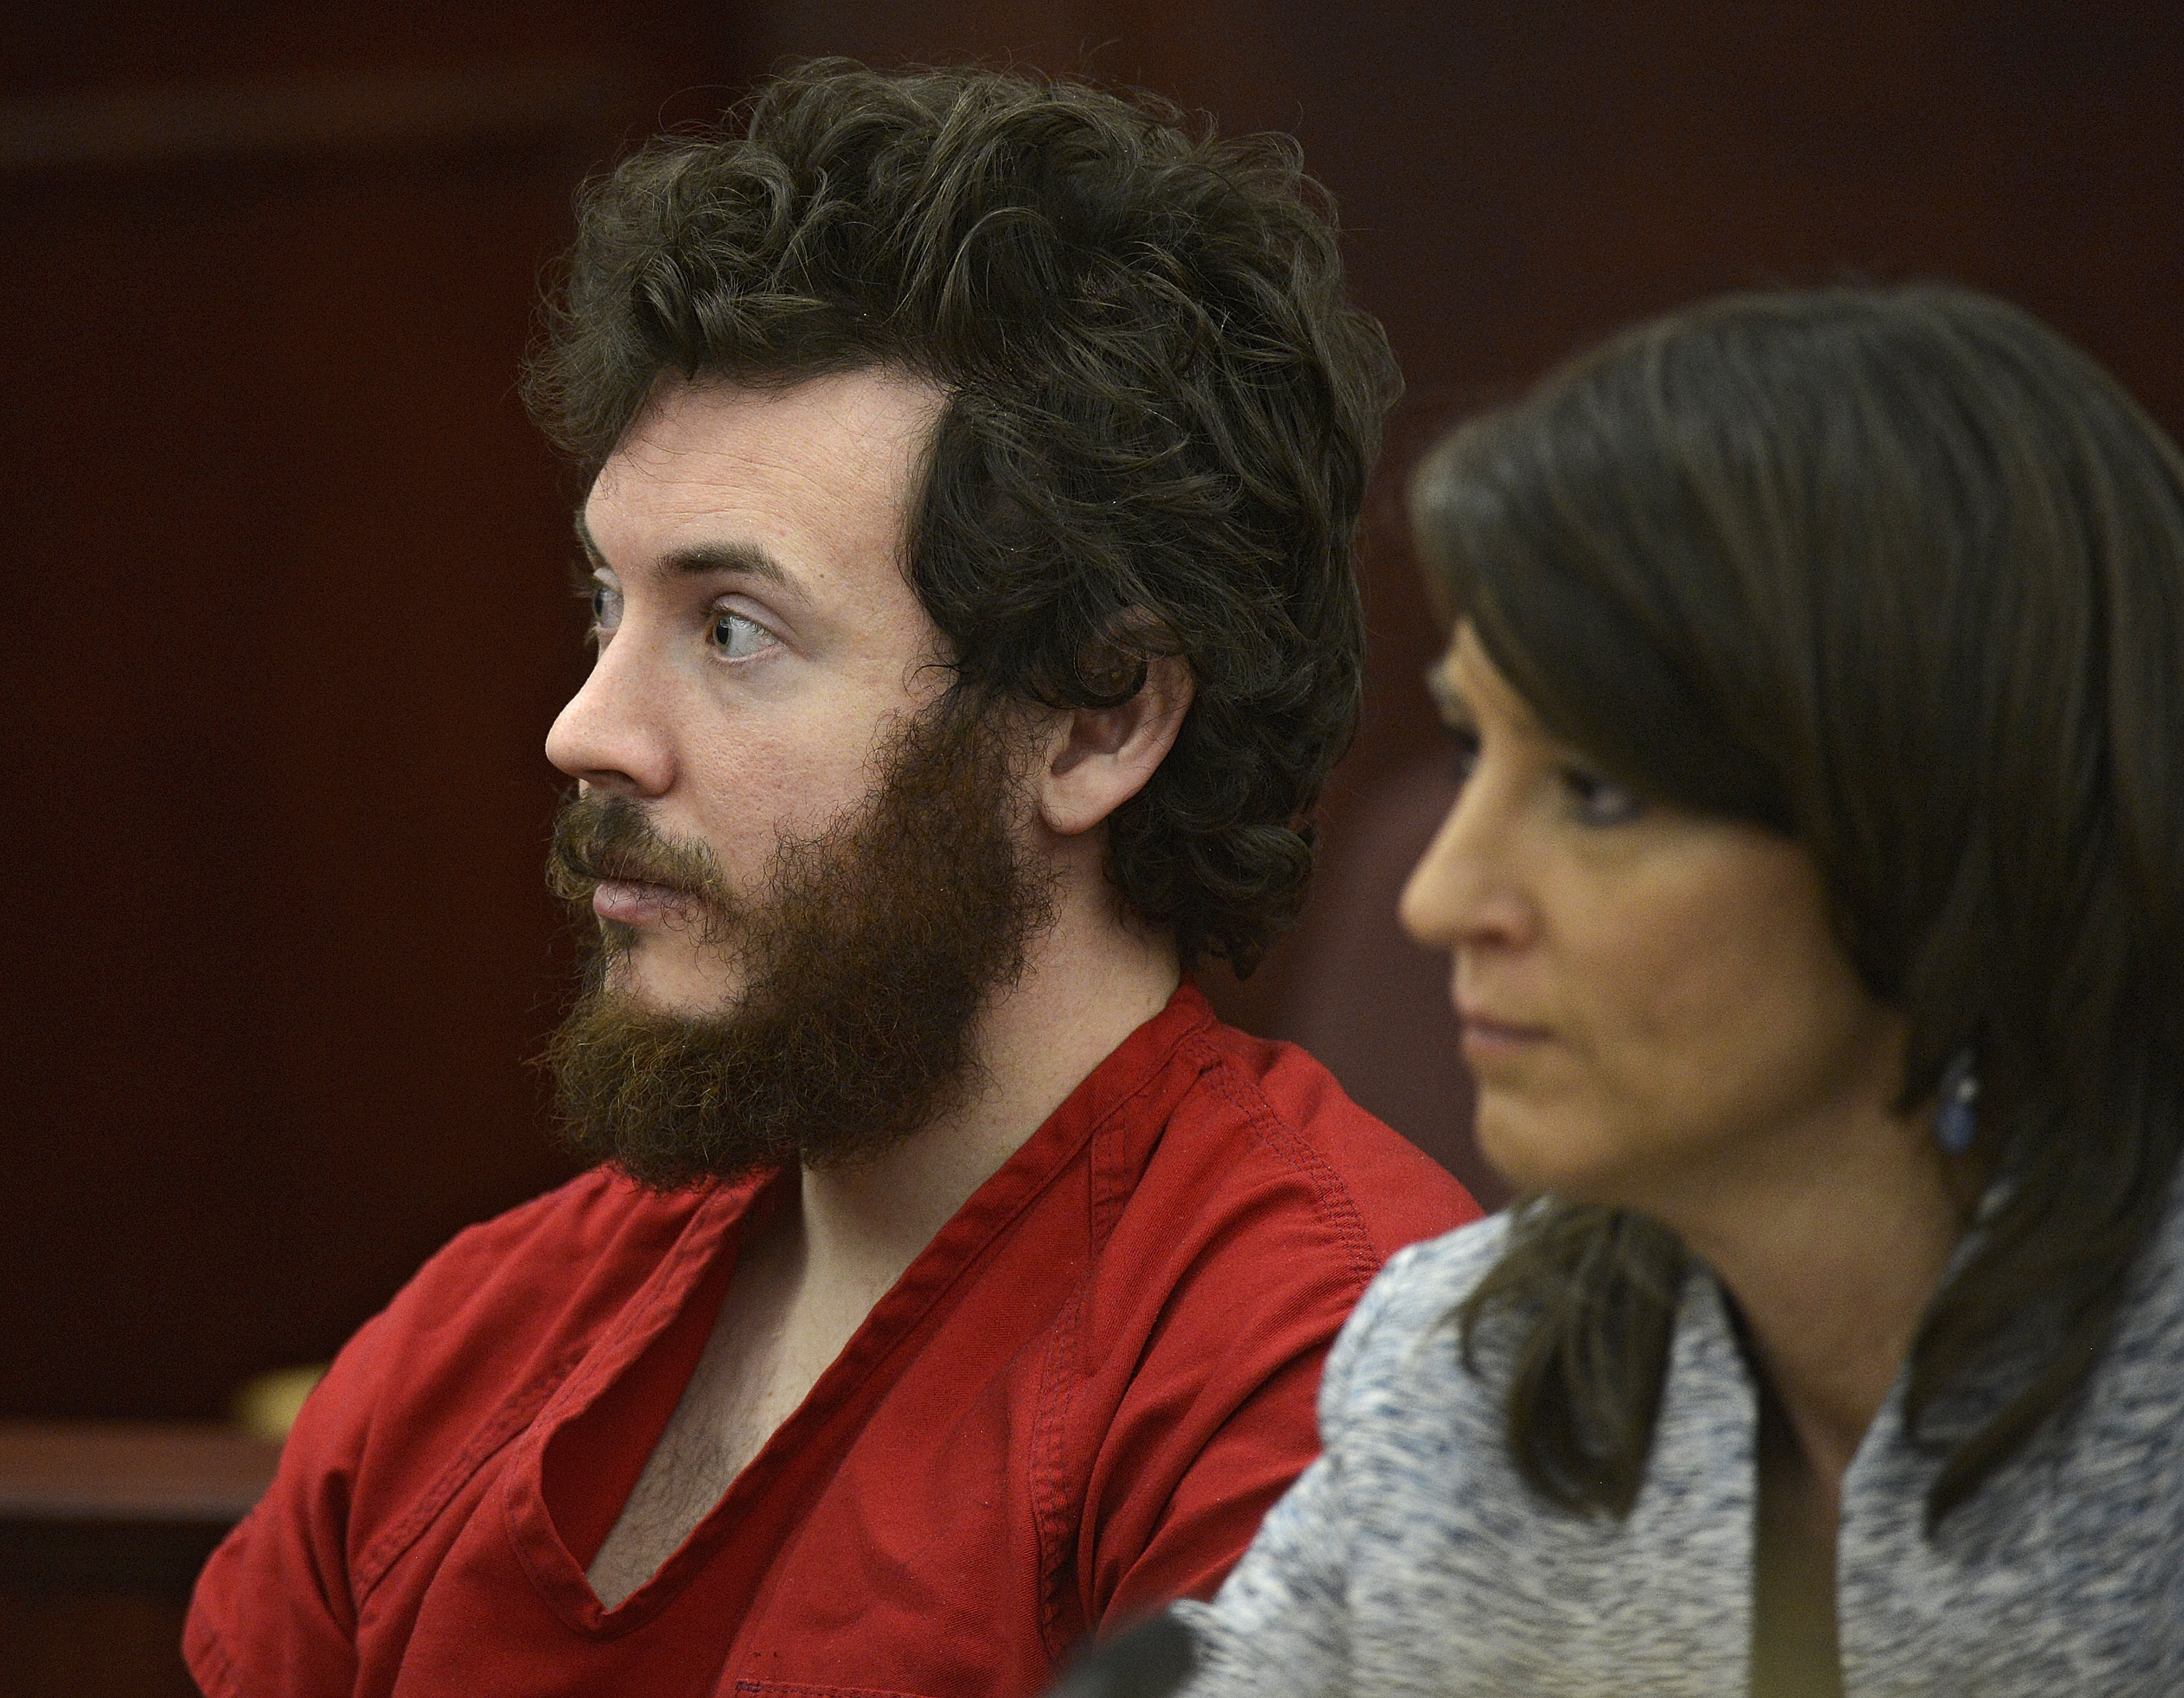 The Latest: James Holmes ill, depressed months before attack